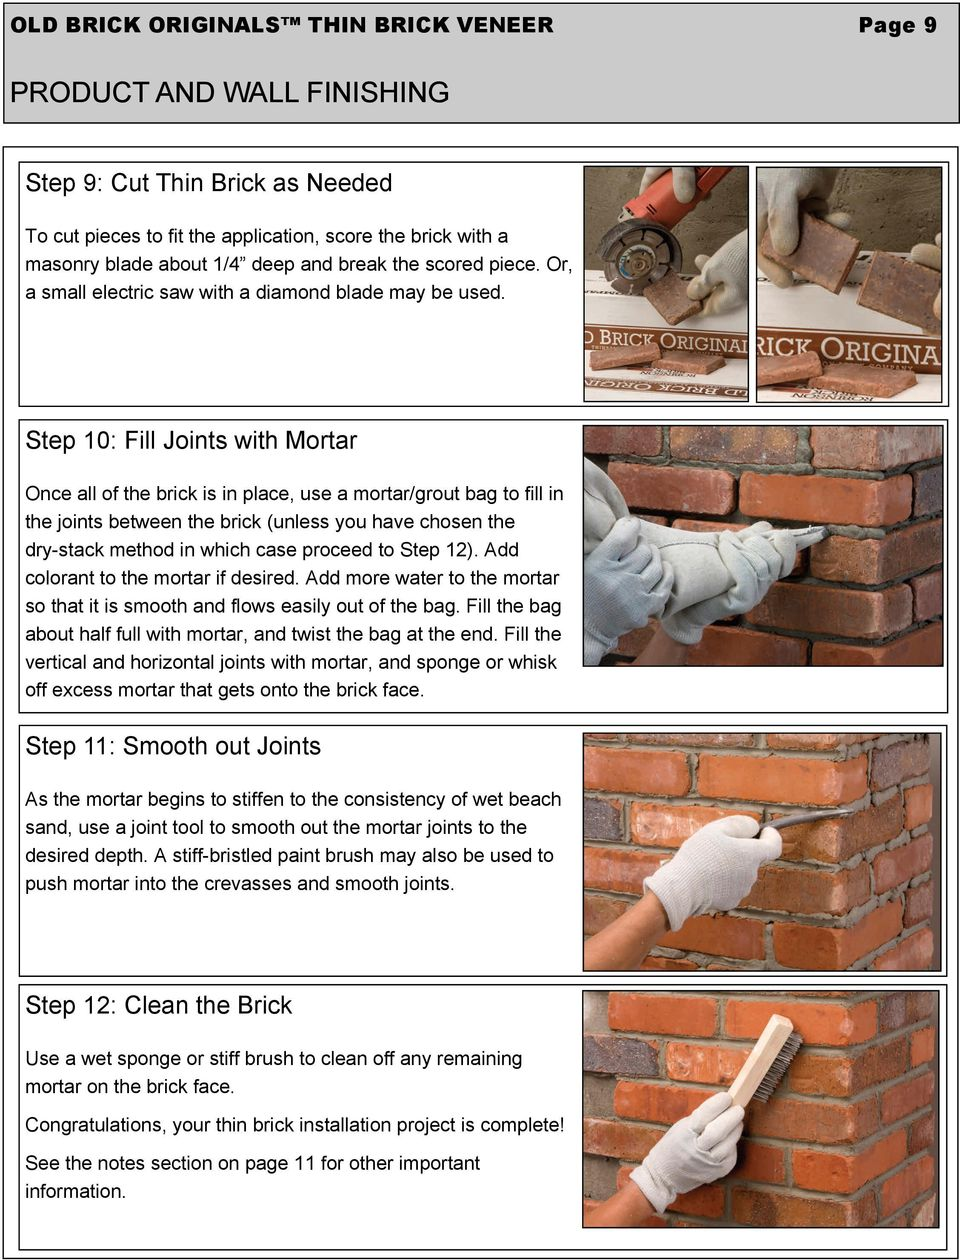 Step 10: Fill Joints with Mortar Once all of the brick is in place, use a mortar/grout bag to fill in the joints between the brick (unless you have chosen the dry-stack method in which case proceed